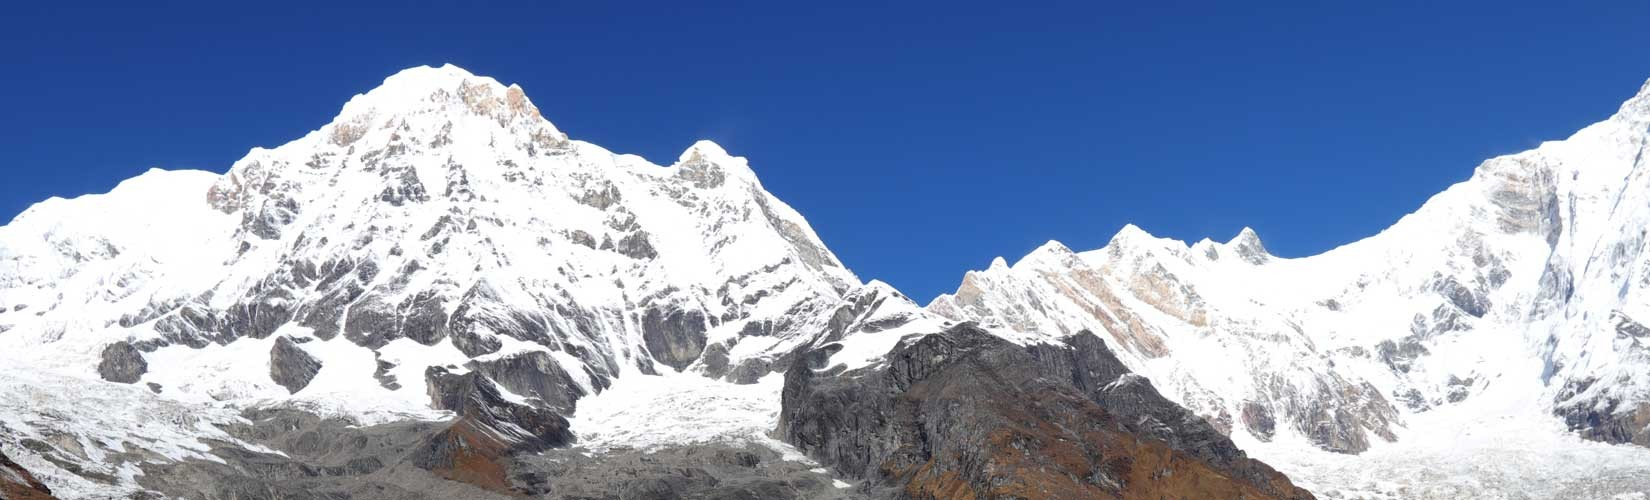 Nepal is Open for Tourism - Notice for arrival in nepal for foreigners